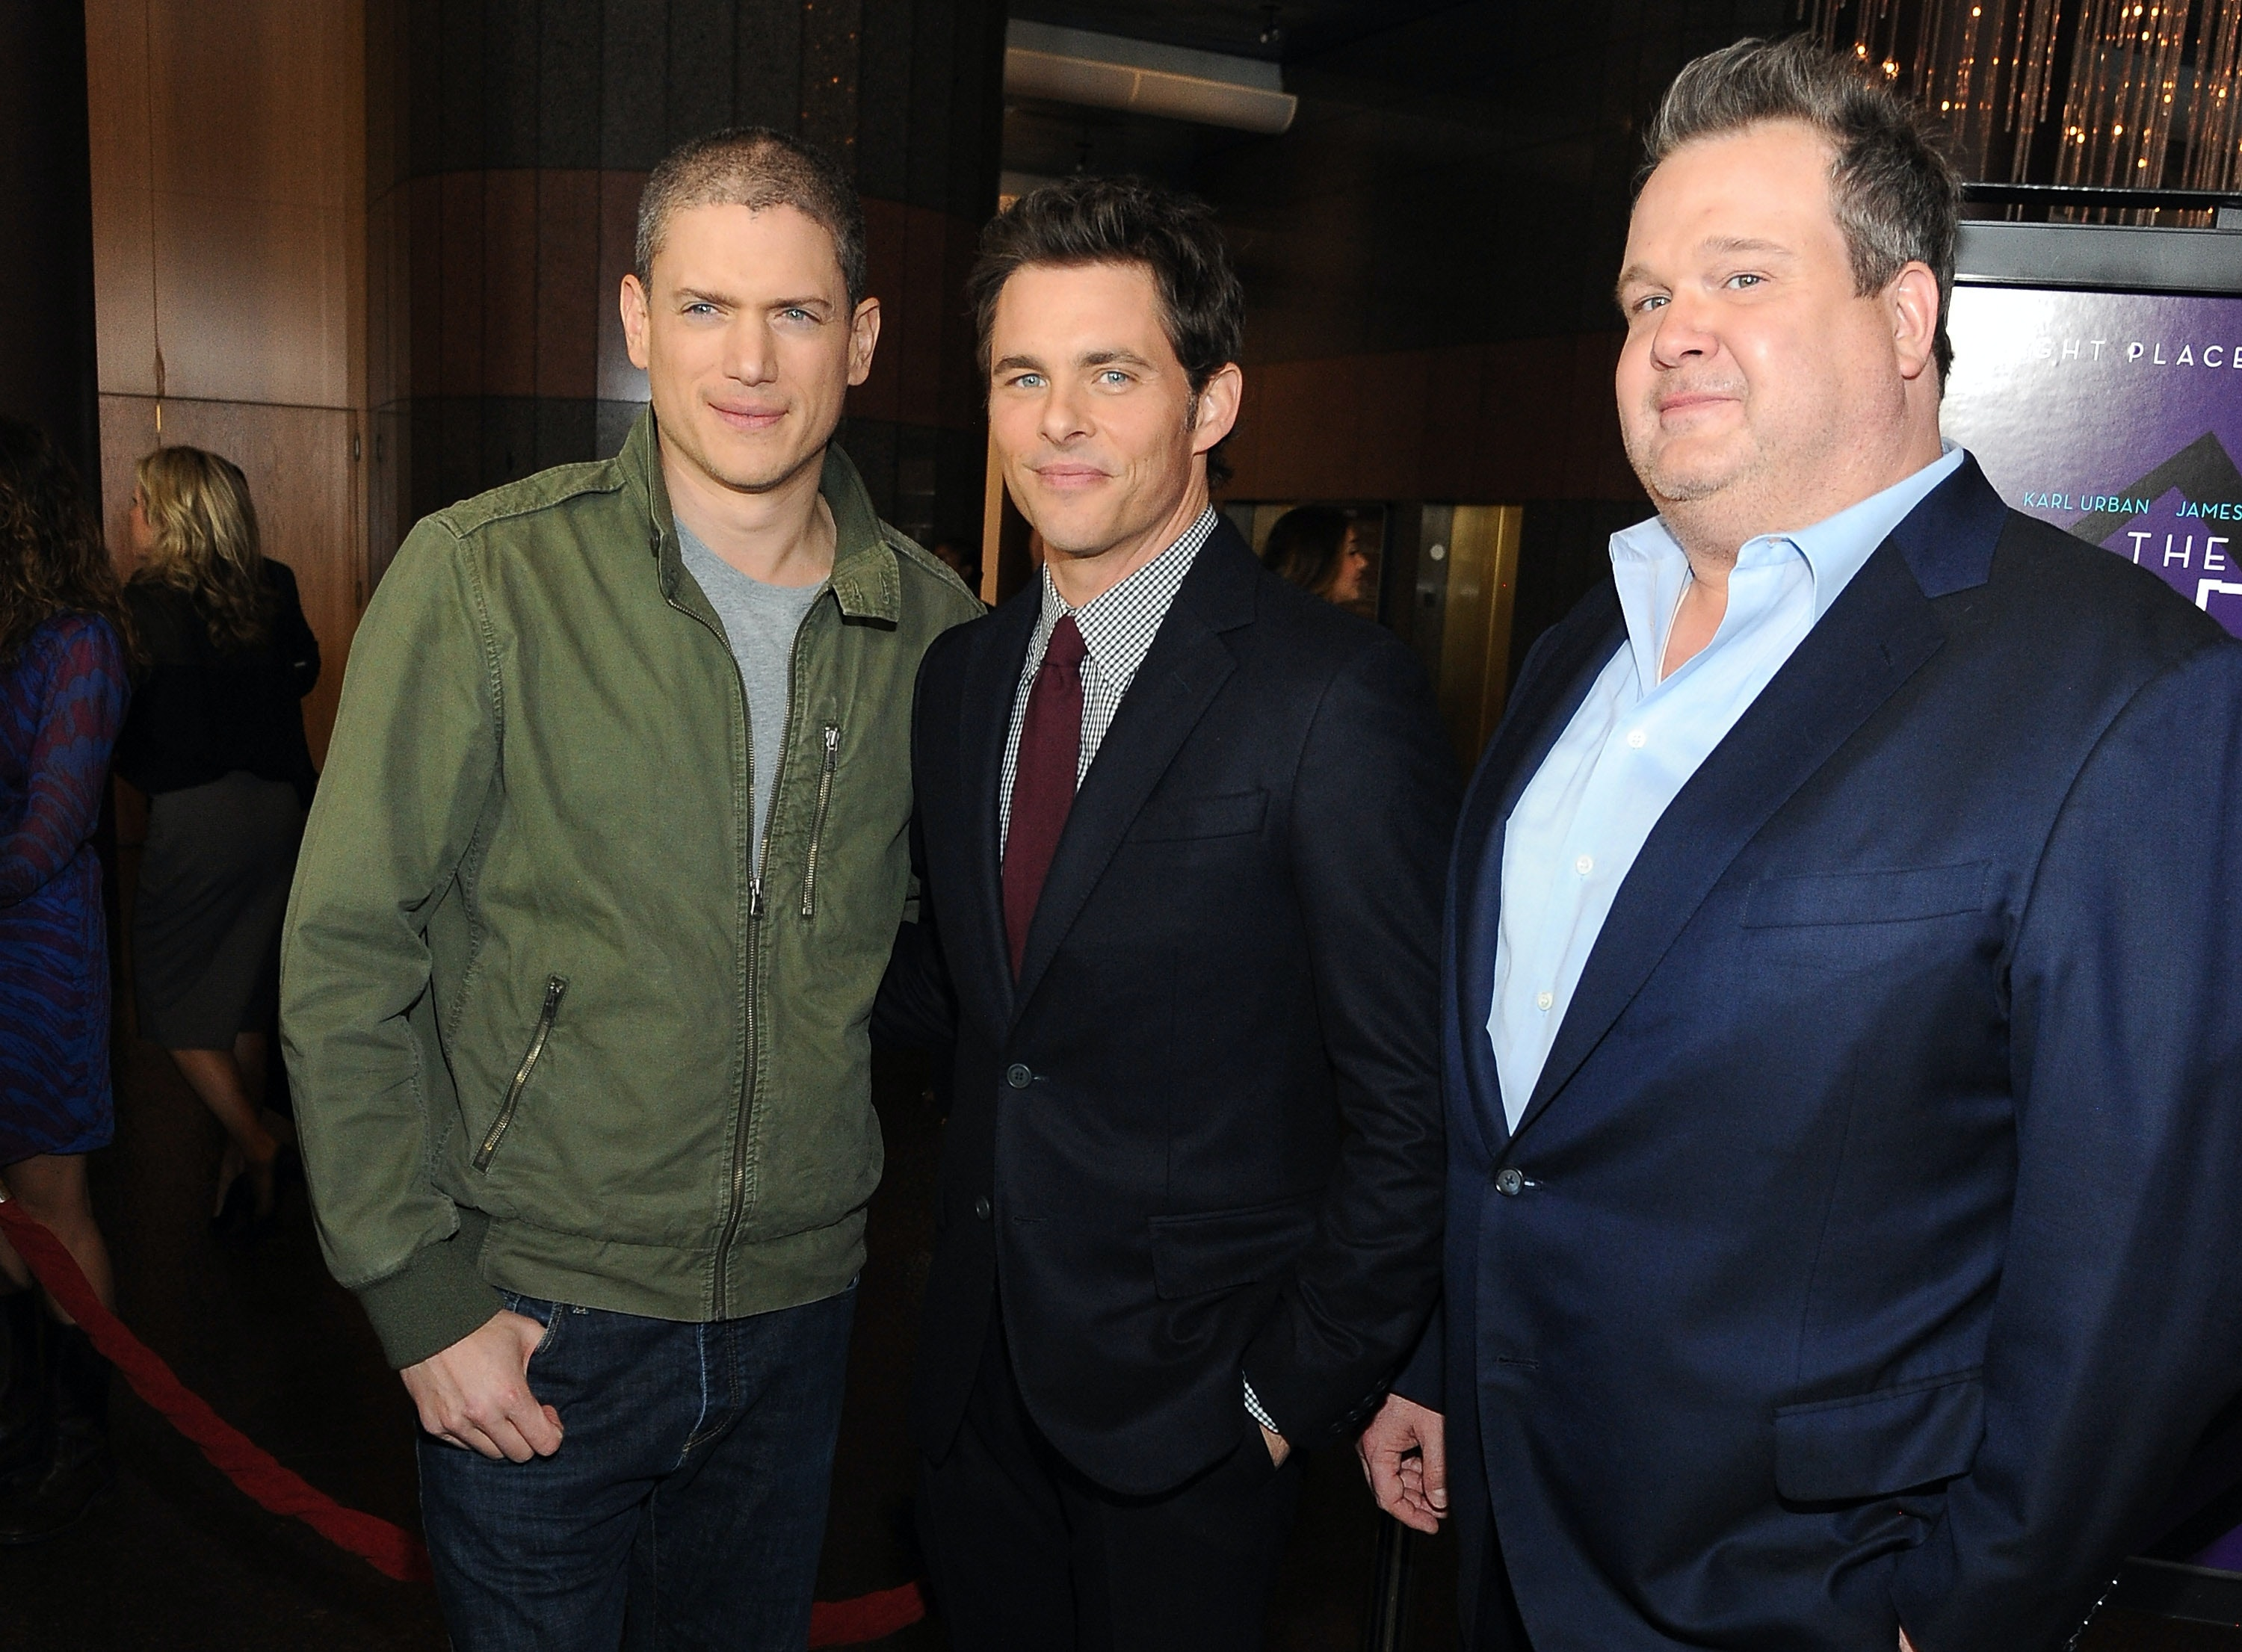 Who Is Wentworth Miller Dating? He Keeps His Private Life